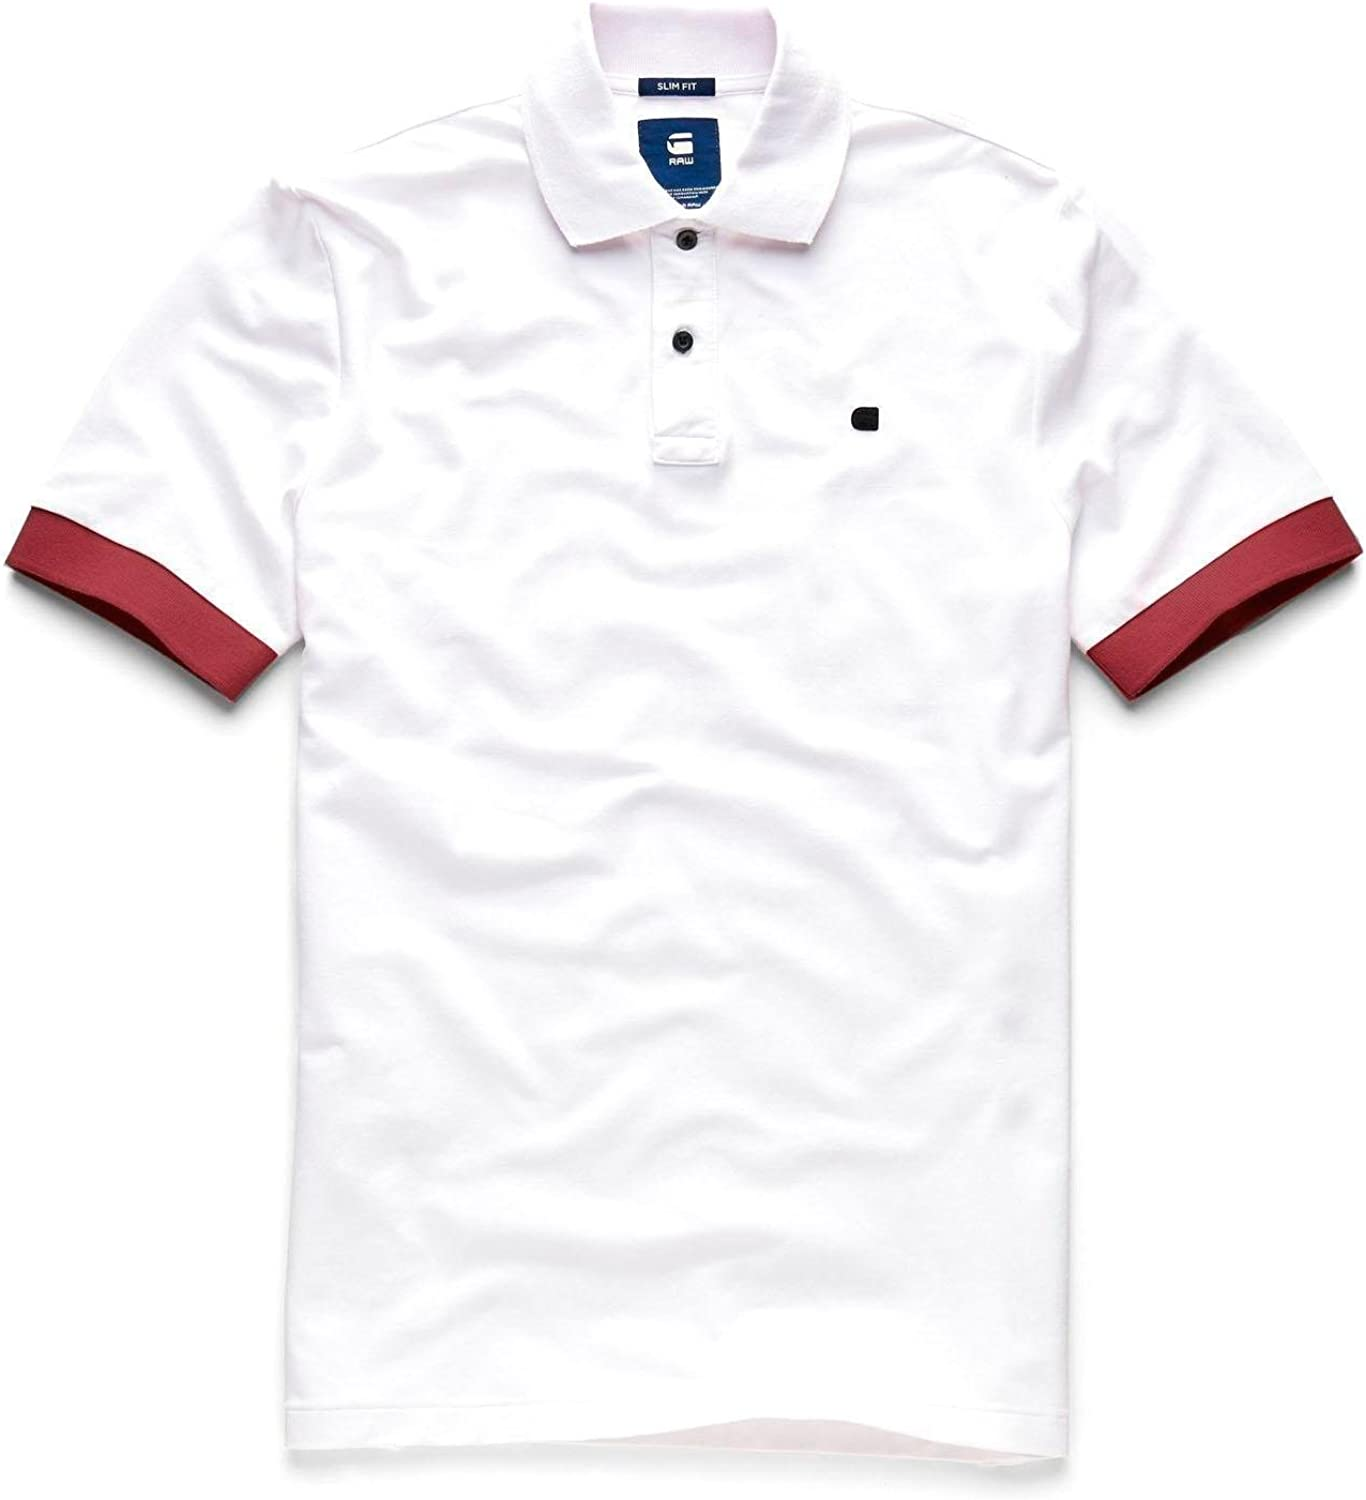 Polo G-Star Core Blanco: Amazon.es: Ropa y accesorios